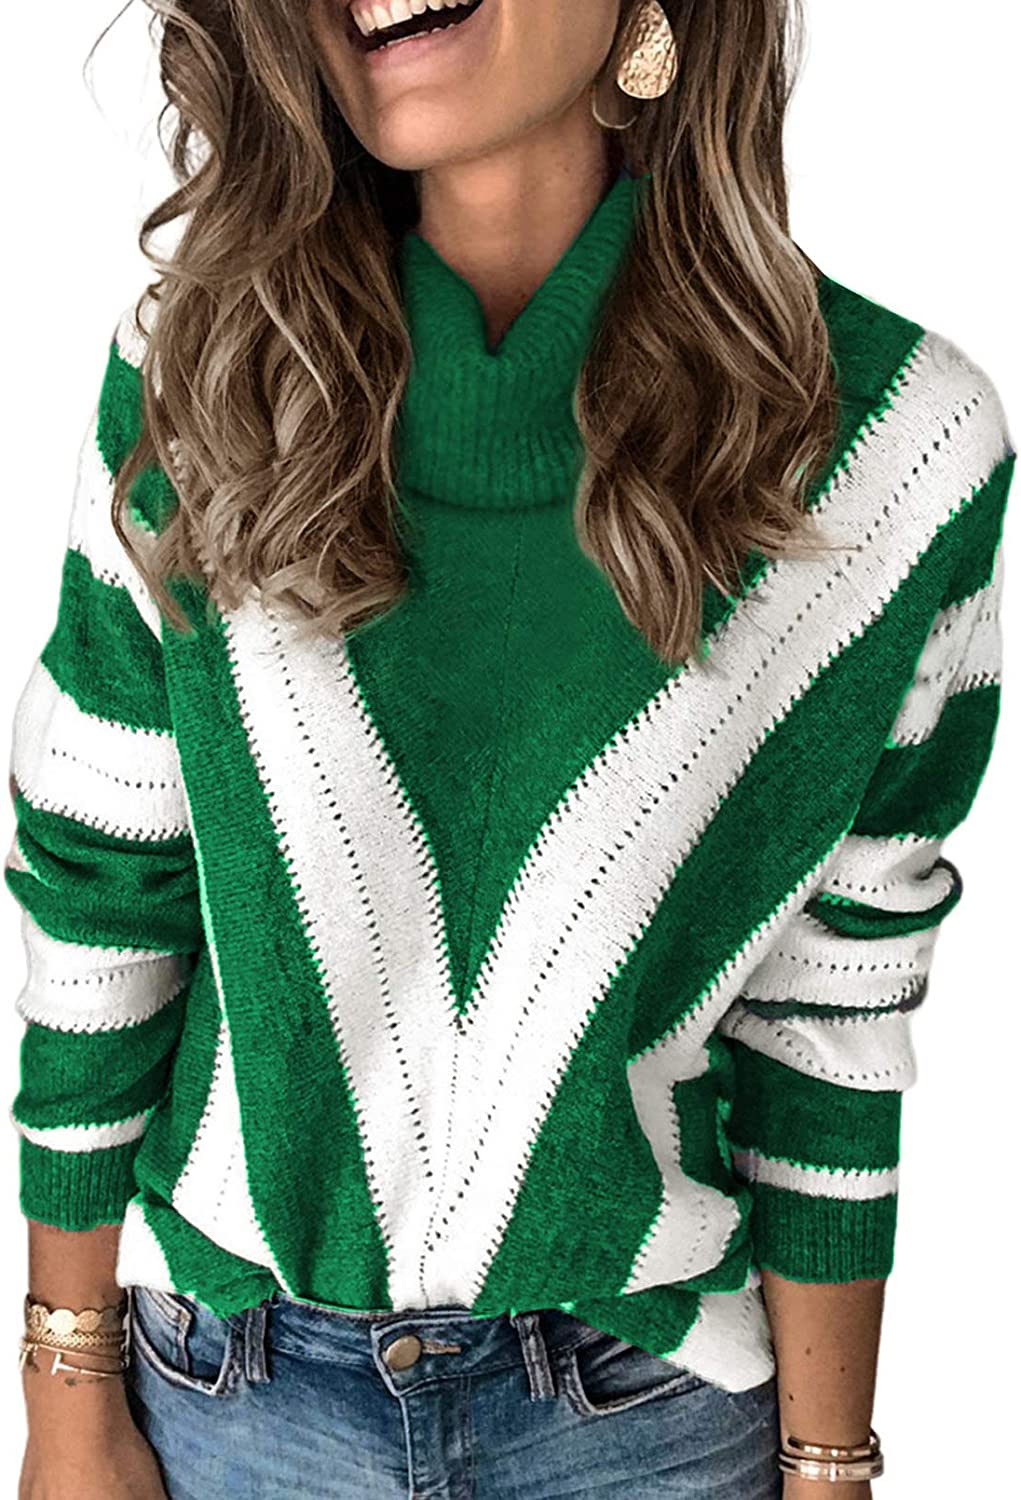 Aleumdr Womens Long Sleeve Color Block Sweater Casual Crewneck Pullover Fall Winter Knit Jumper Tops